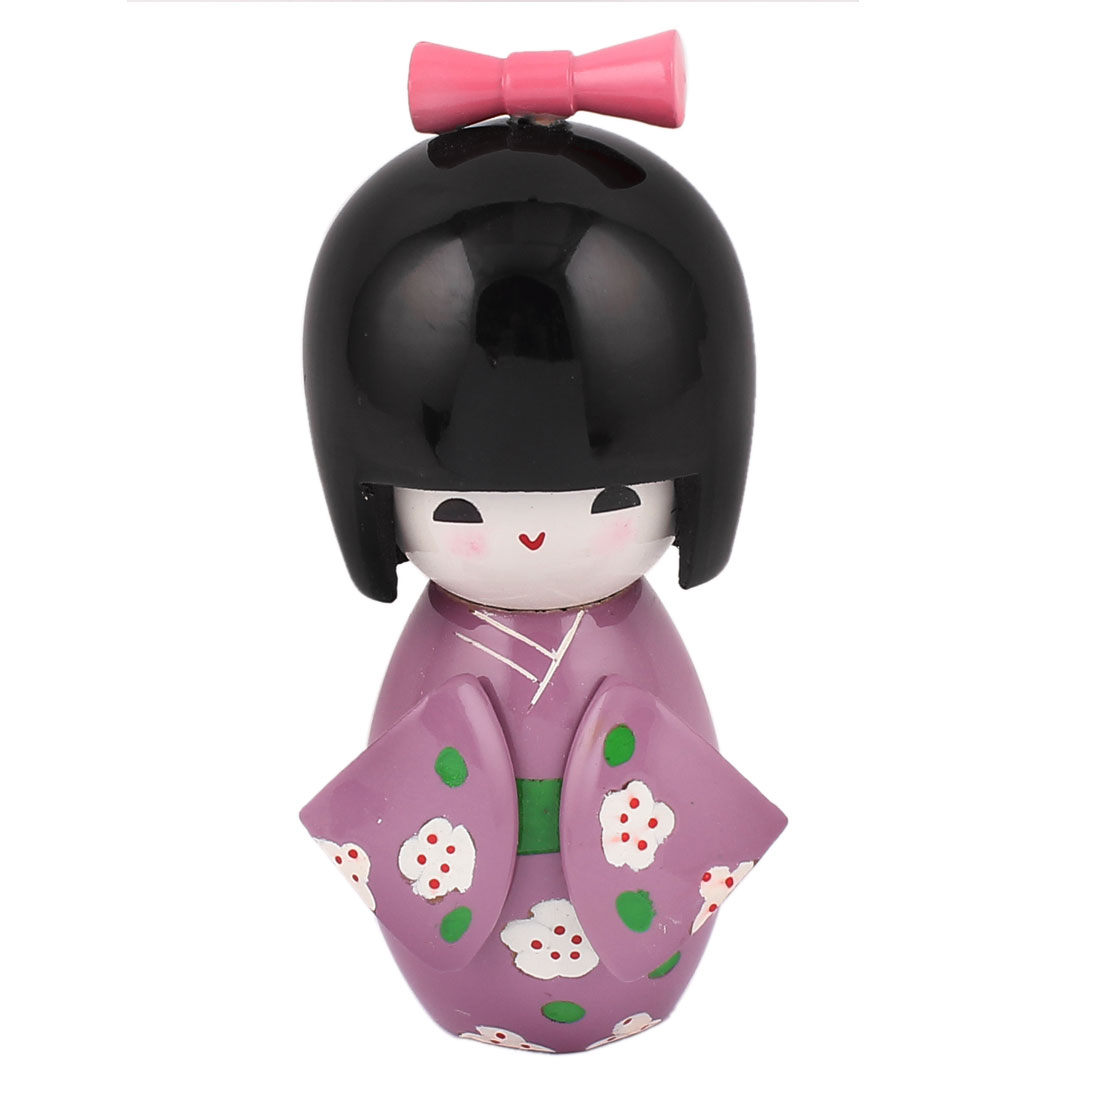 Flower Printed Wooden Japanese Purple Kimono Kokeshi Doll for Kids